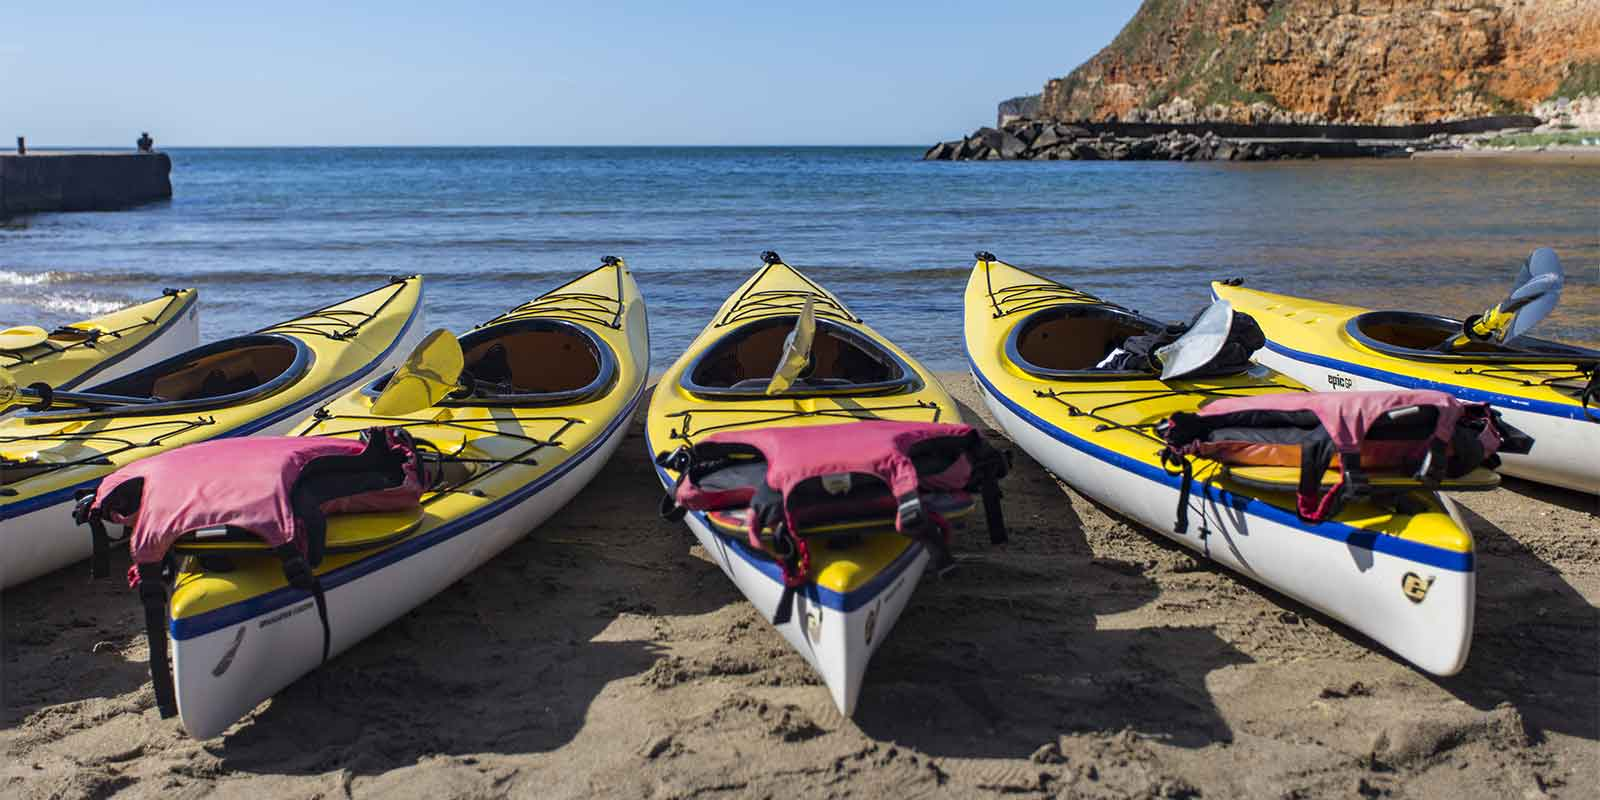 Kayaks and lifejackets waiting on the beach